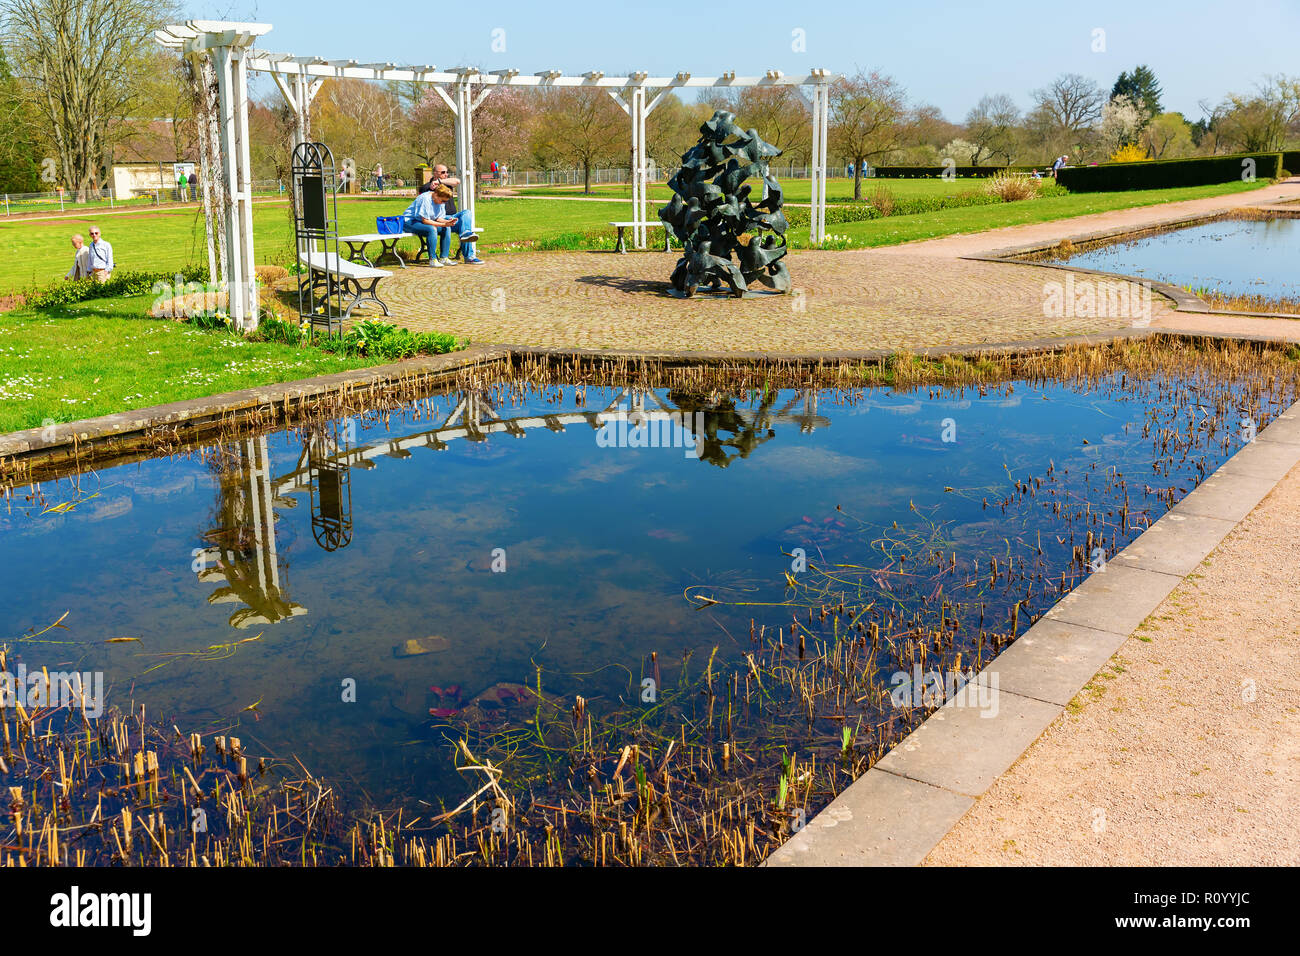 Pool Garten Hessen Darmstadt City Stock Photos Darmstadt City Stock Images Alamy